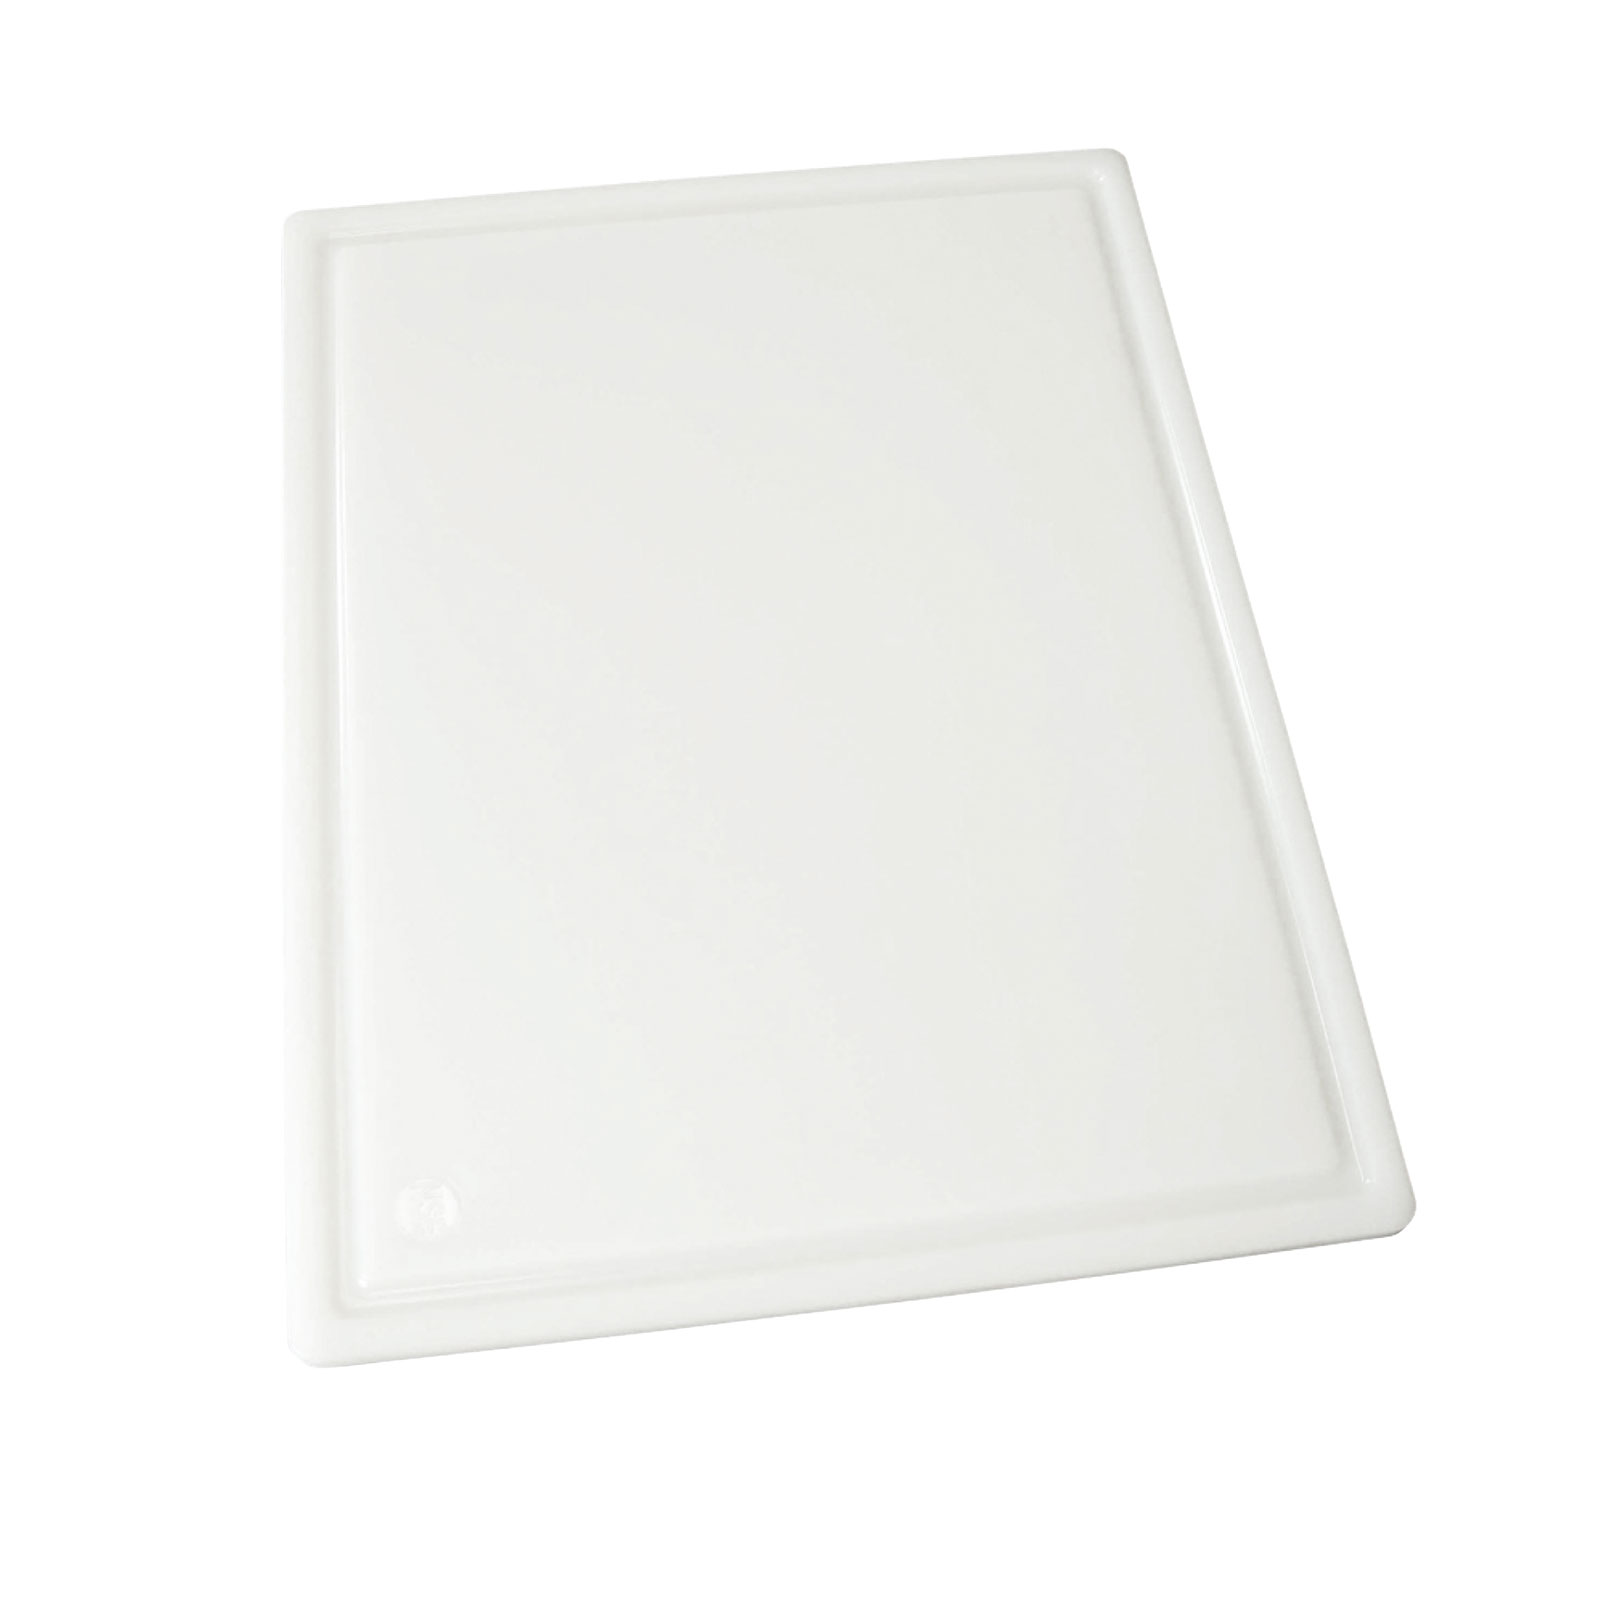 Winco CBI-1520 cutting board, plastic